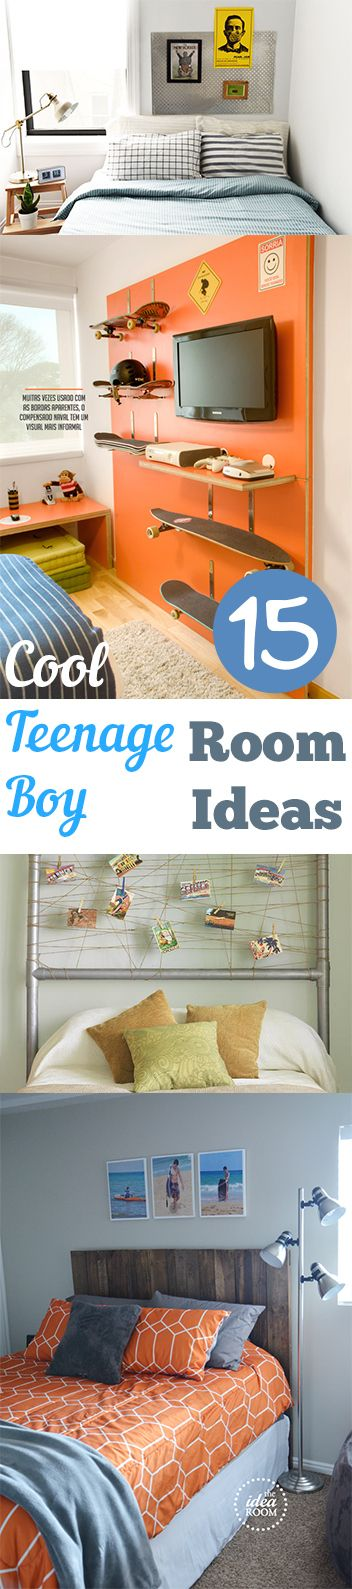 15 cool boy room ideas and elements